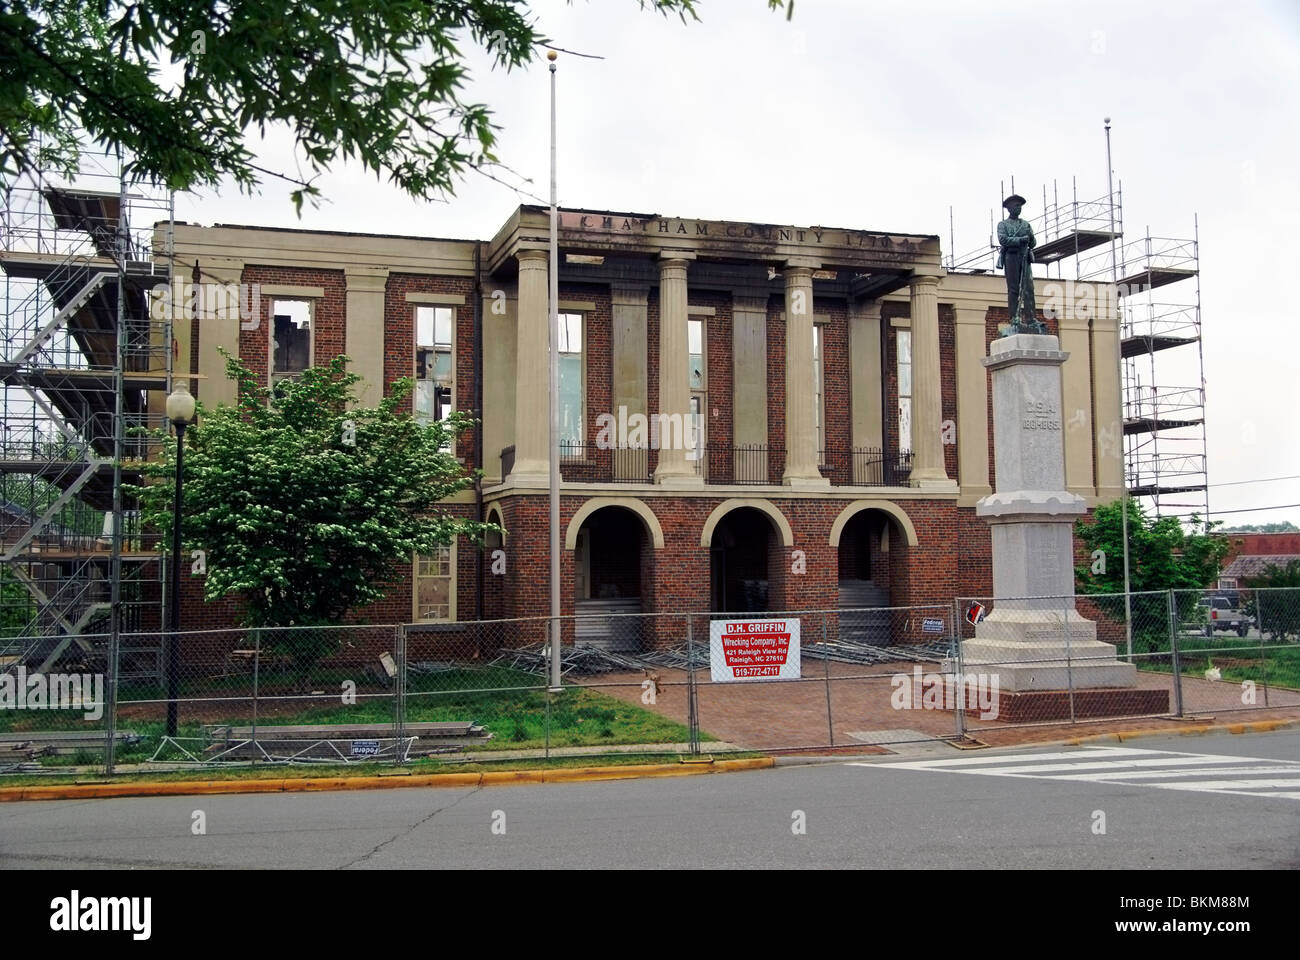 Chatham county courthouse damaged by fire on March 25th, 2010. - Stock Image